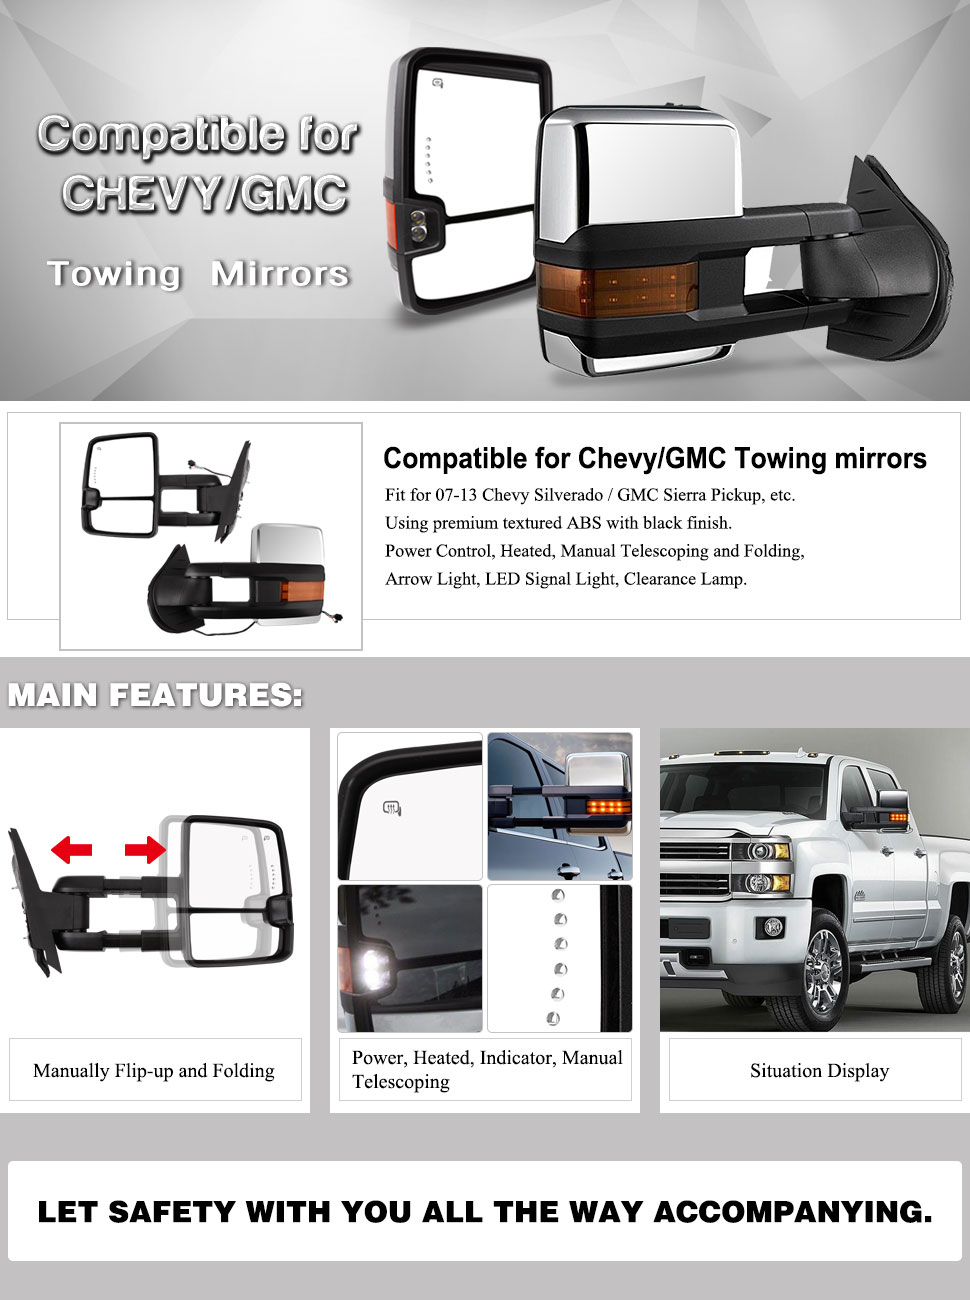 Chevy Silverado GMC Sierra Truck Chrome Power Heated Signal + Arrow +  Clearance Lamps Towing Mirrors